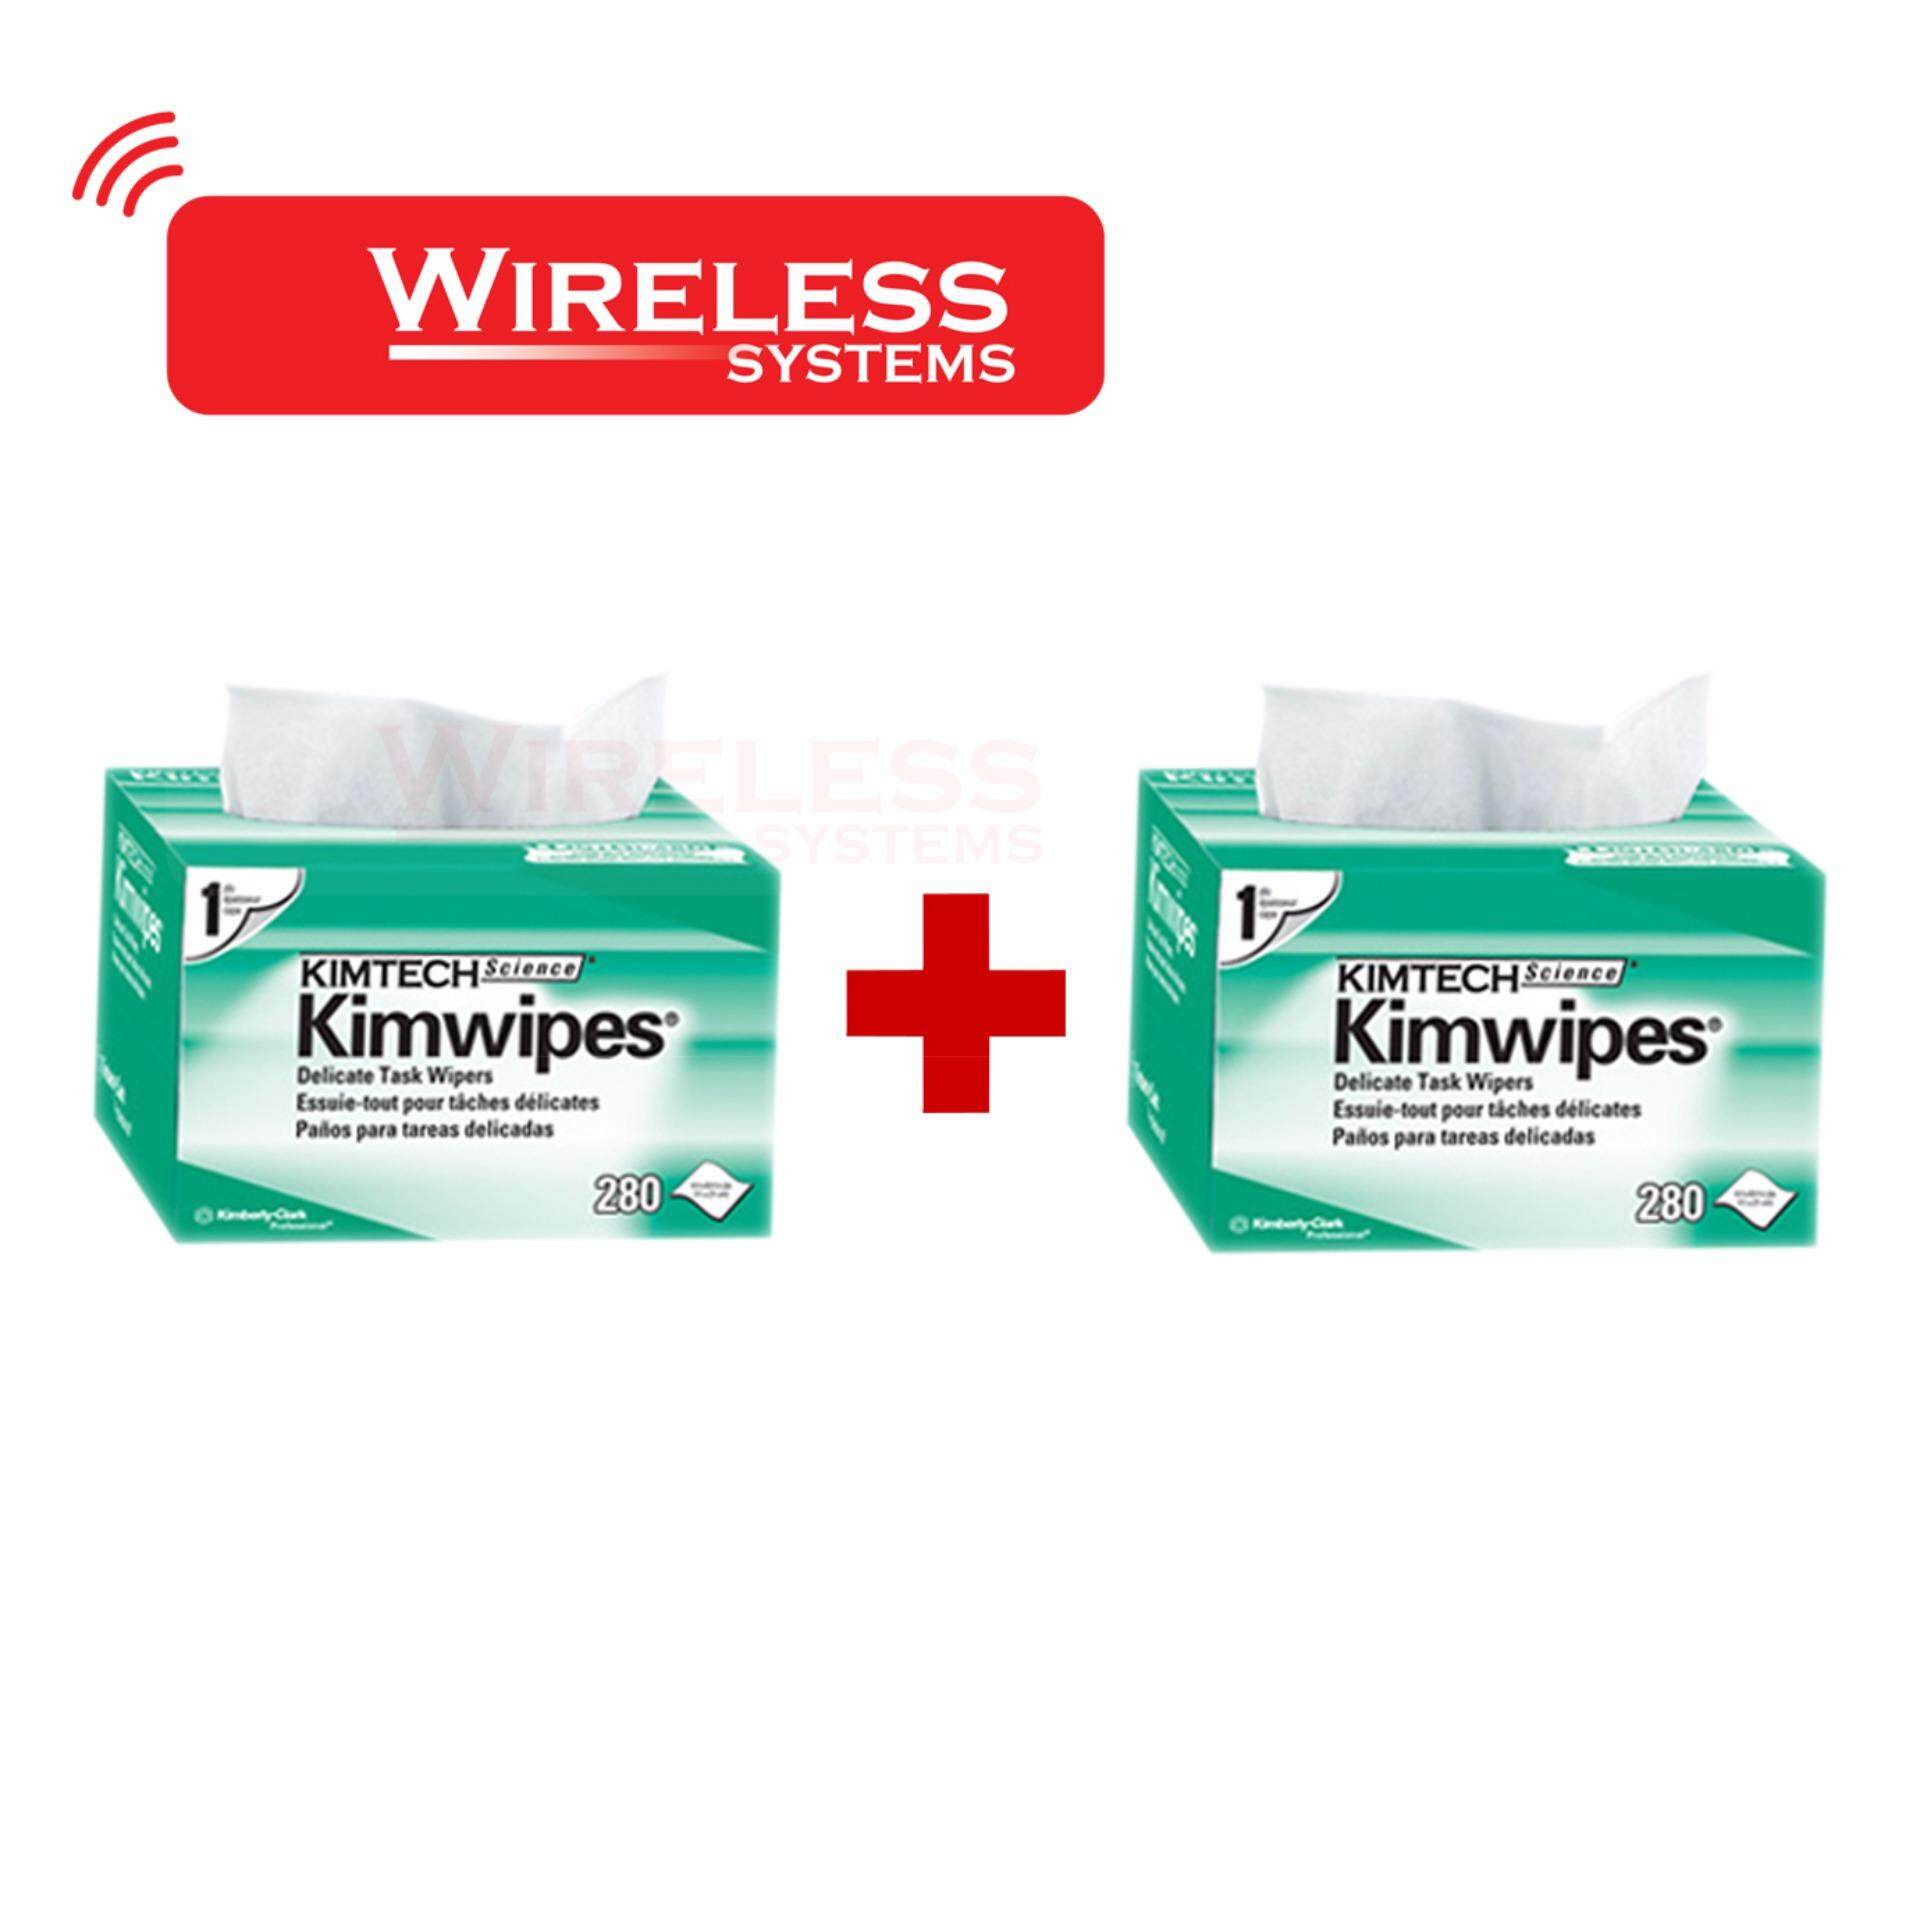 KIMTECH SCIENCE  KIMWIPES  Delicate Task Wipers พิเศษ Pack คู่ 2 กล่อง